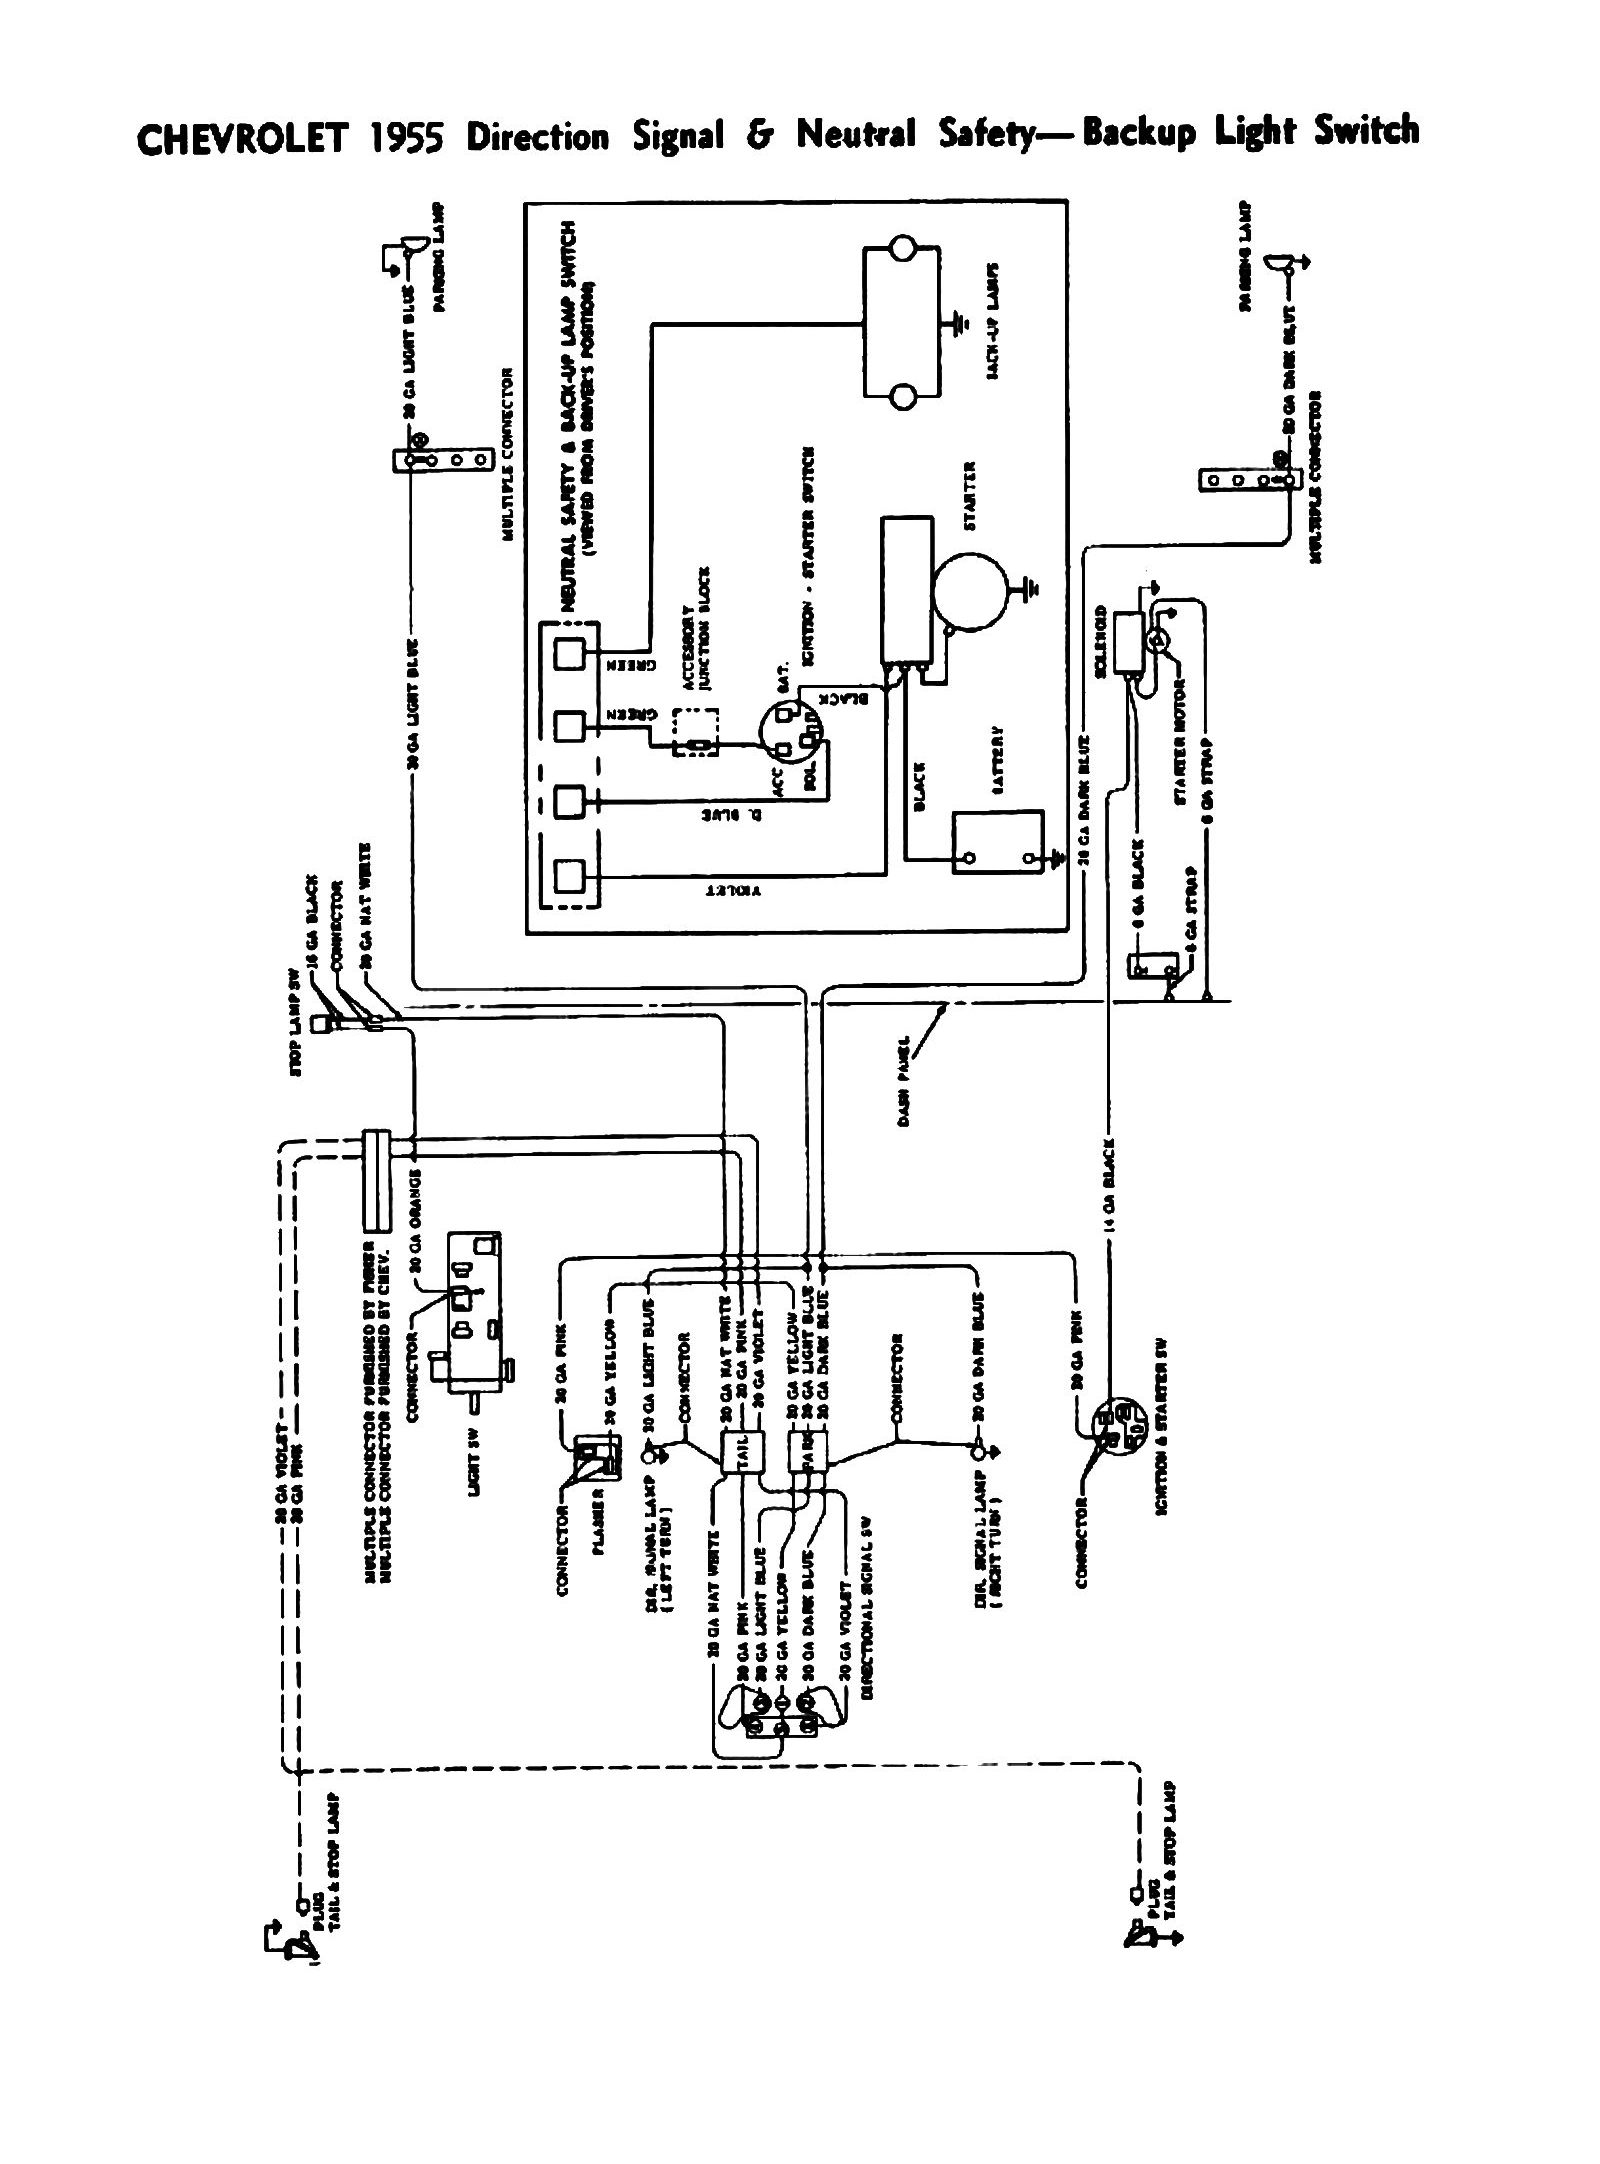 55 Chev Wiring Diagram - Auto Electrical Wiring Diagram Club Car Wiring Diagram on club car assembly diagram, 1991 club car electrical diagram, club car body diagram, club car throttle diagram, club car motor diagram, club car fuel diagram, club car ds wiring, club car ignition switch, club car switch diagram, club car pedal switch, club car fuse, club car 48v electrical diagram, club cart diagram, club car ignition system, club car motor wiring, club car lighting diagram, club car controller diagram, club car 8 volt batteries, club car ignition diagram, club car parts,